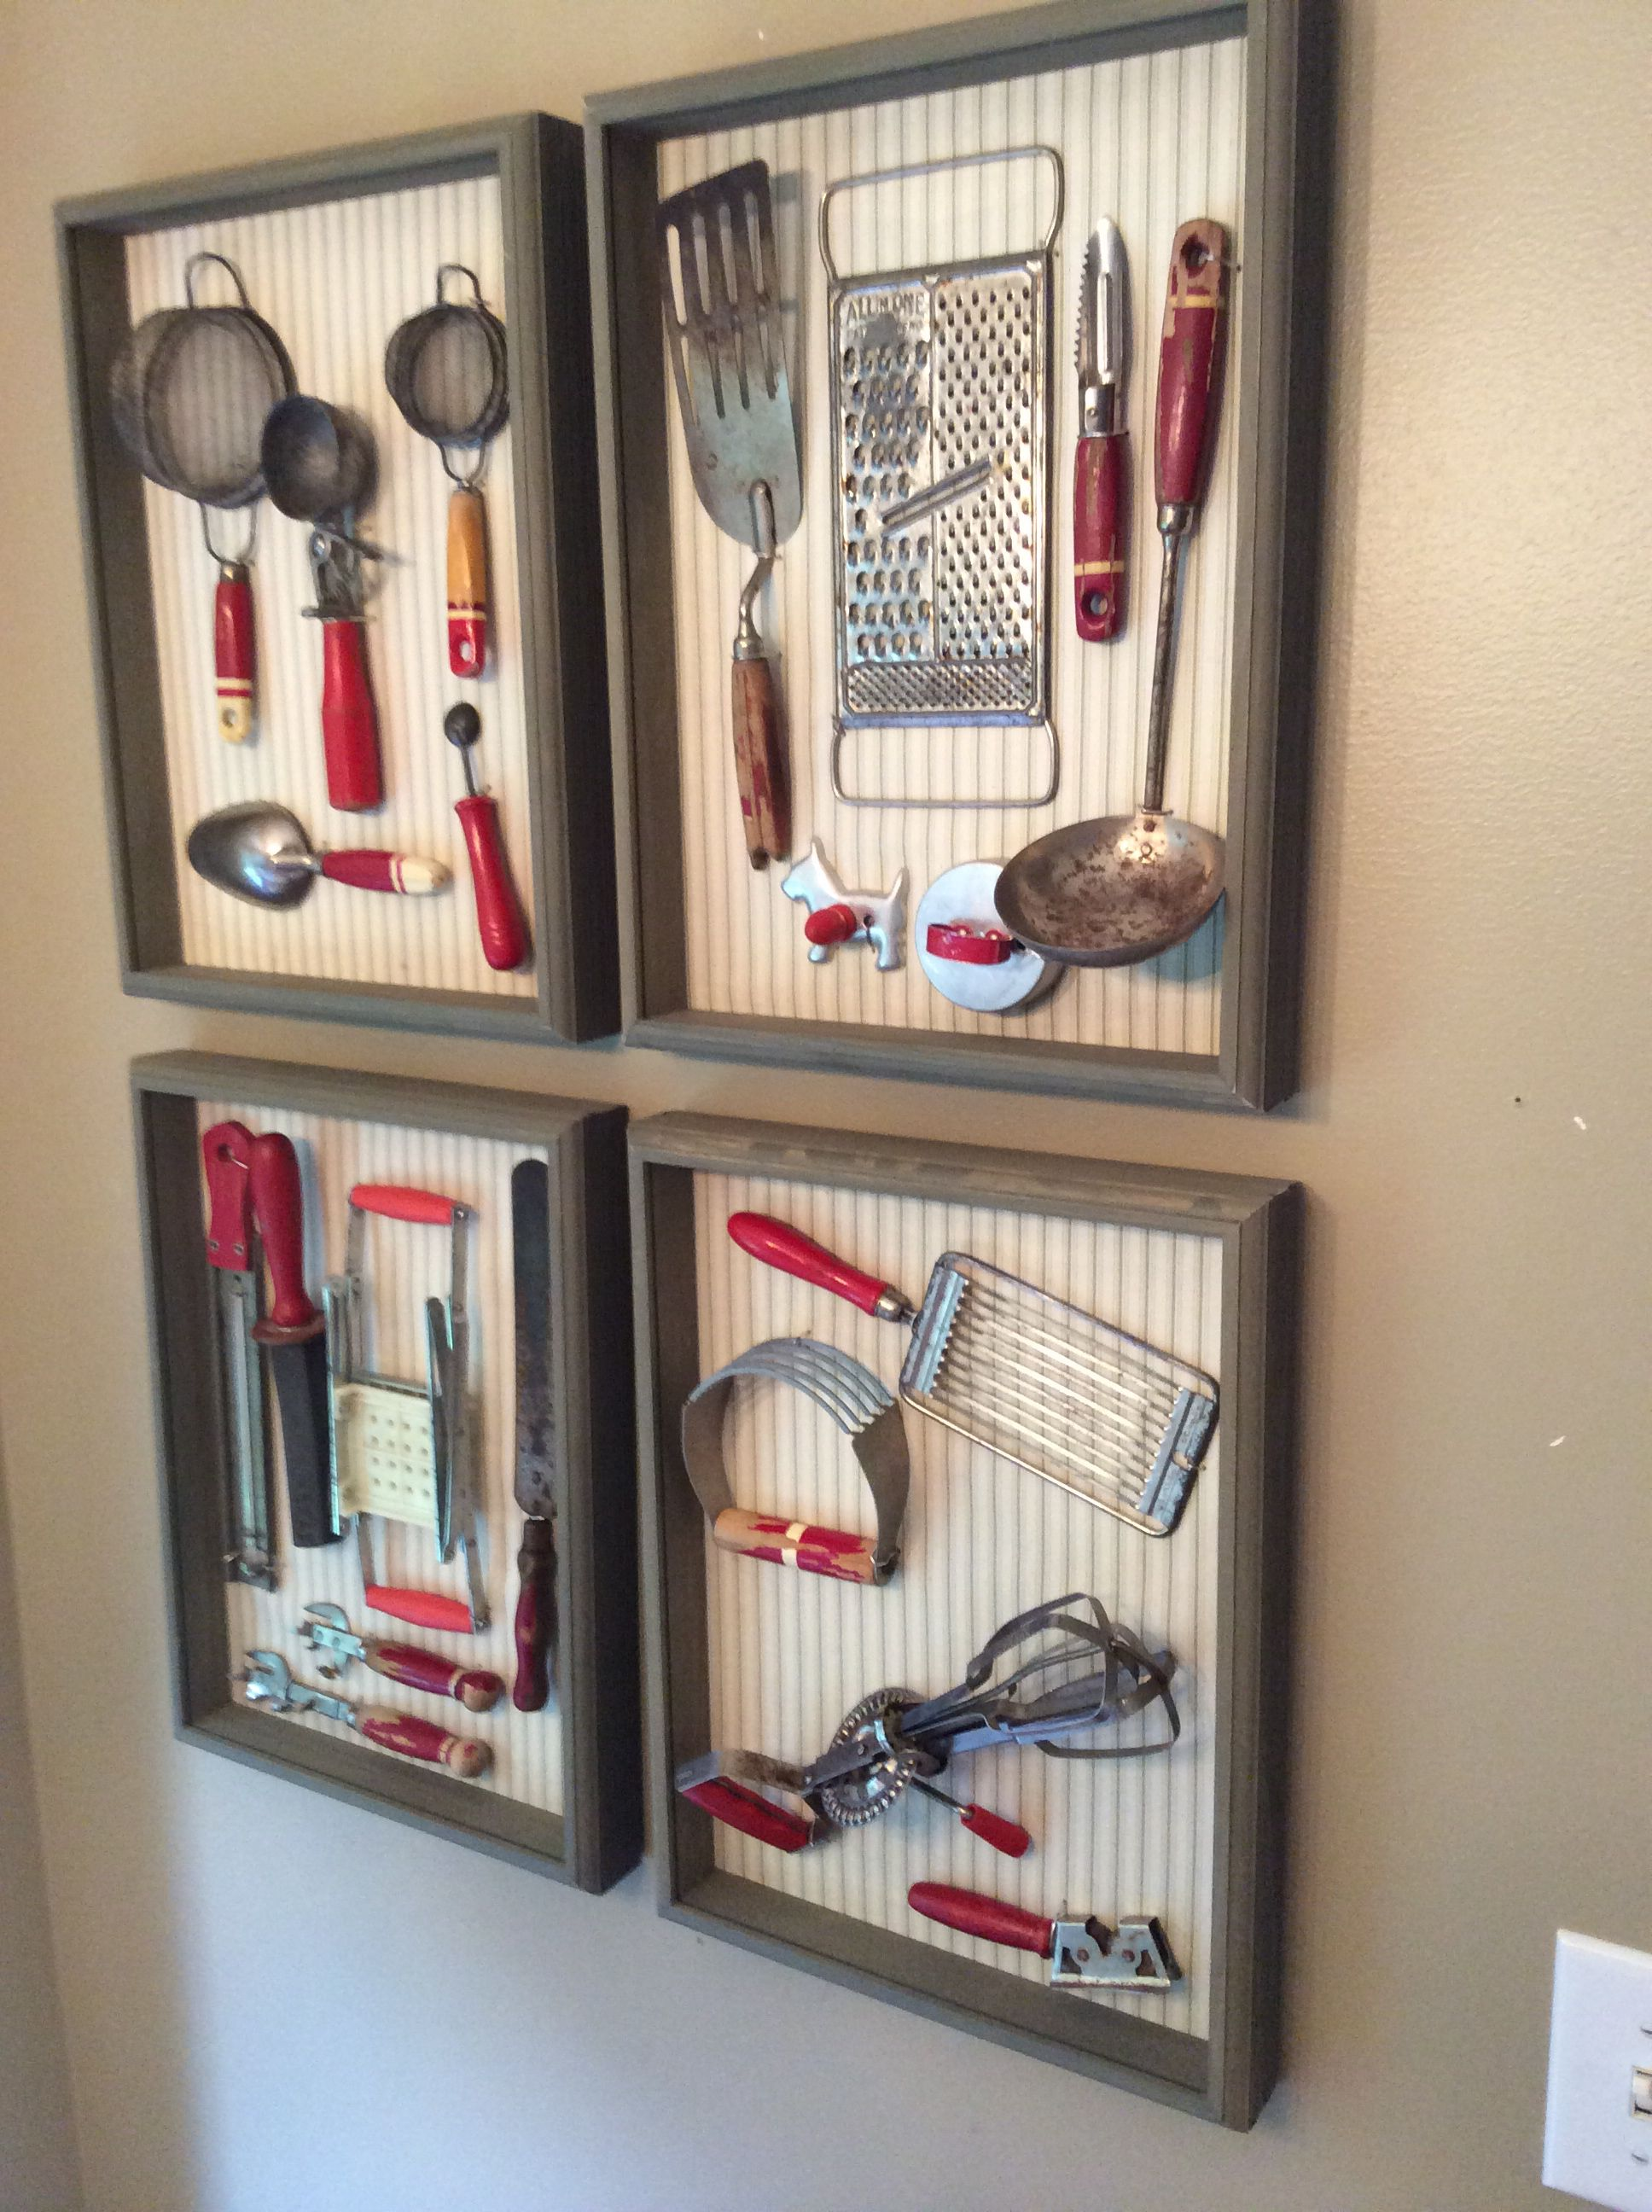 Vintage Kitchen Utensils Displayed In A Shadow Box. I Took The Glass Out Of  The Shadow Box Frame And Lined The Back Board With Fabric.